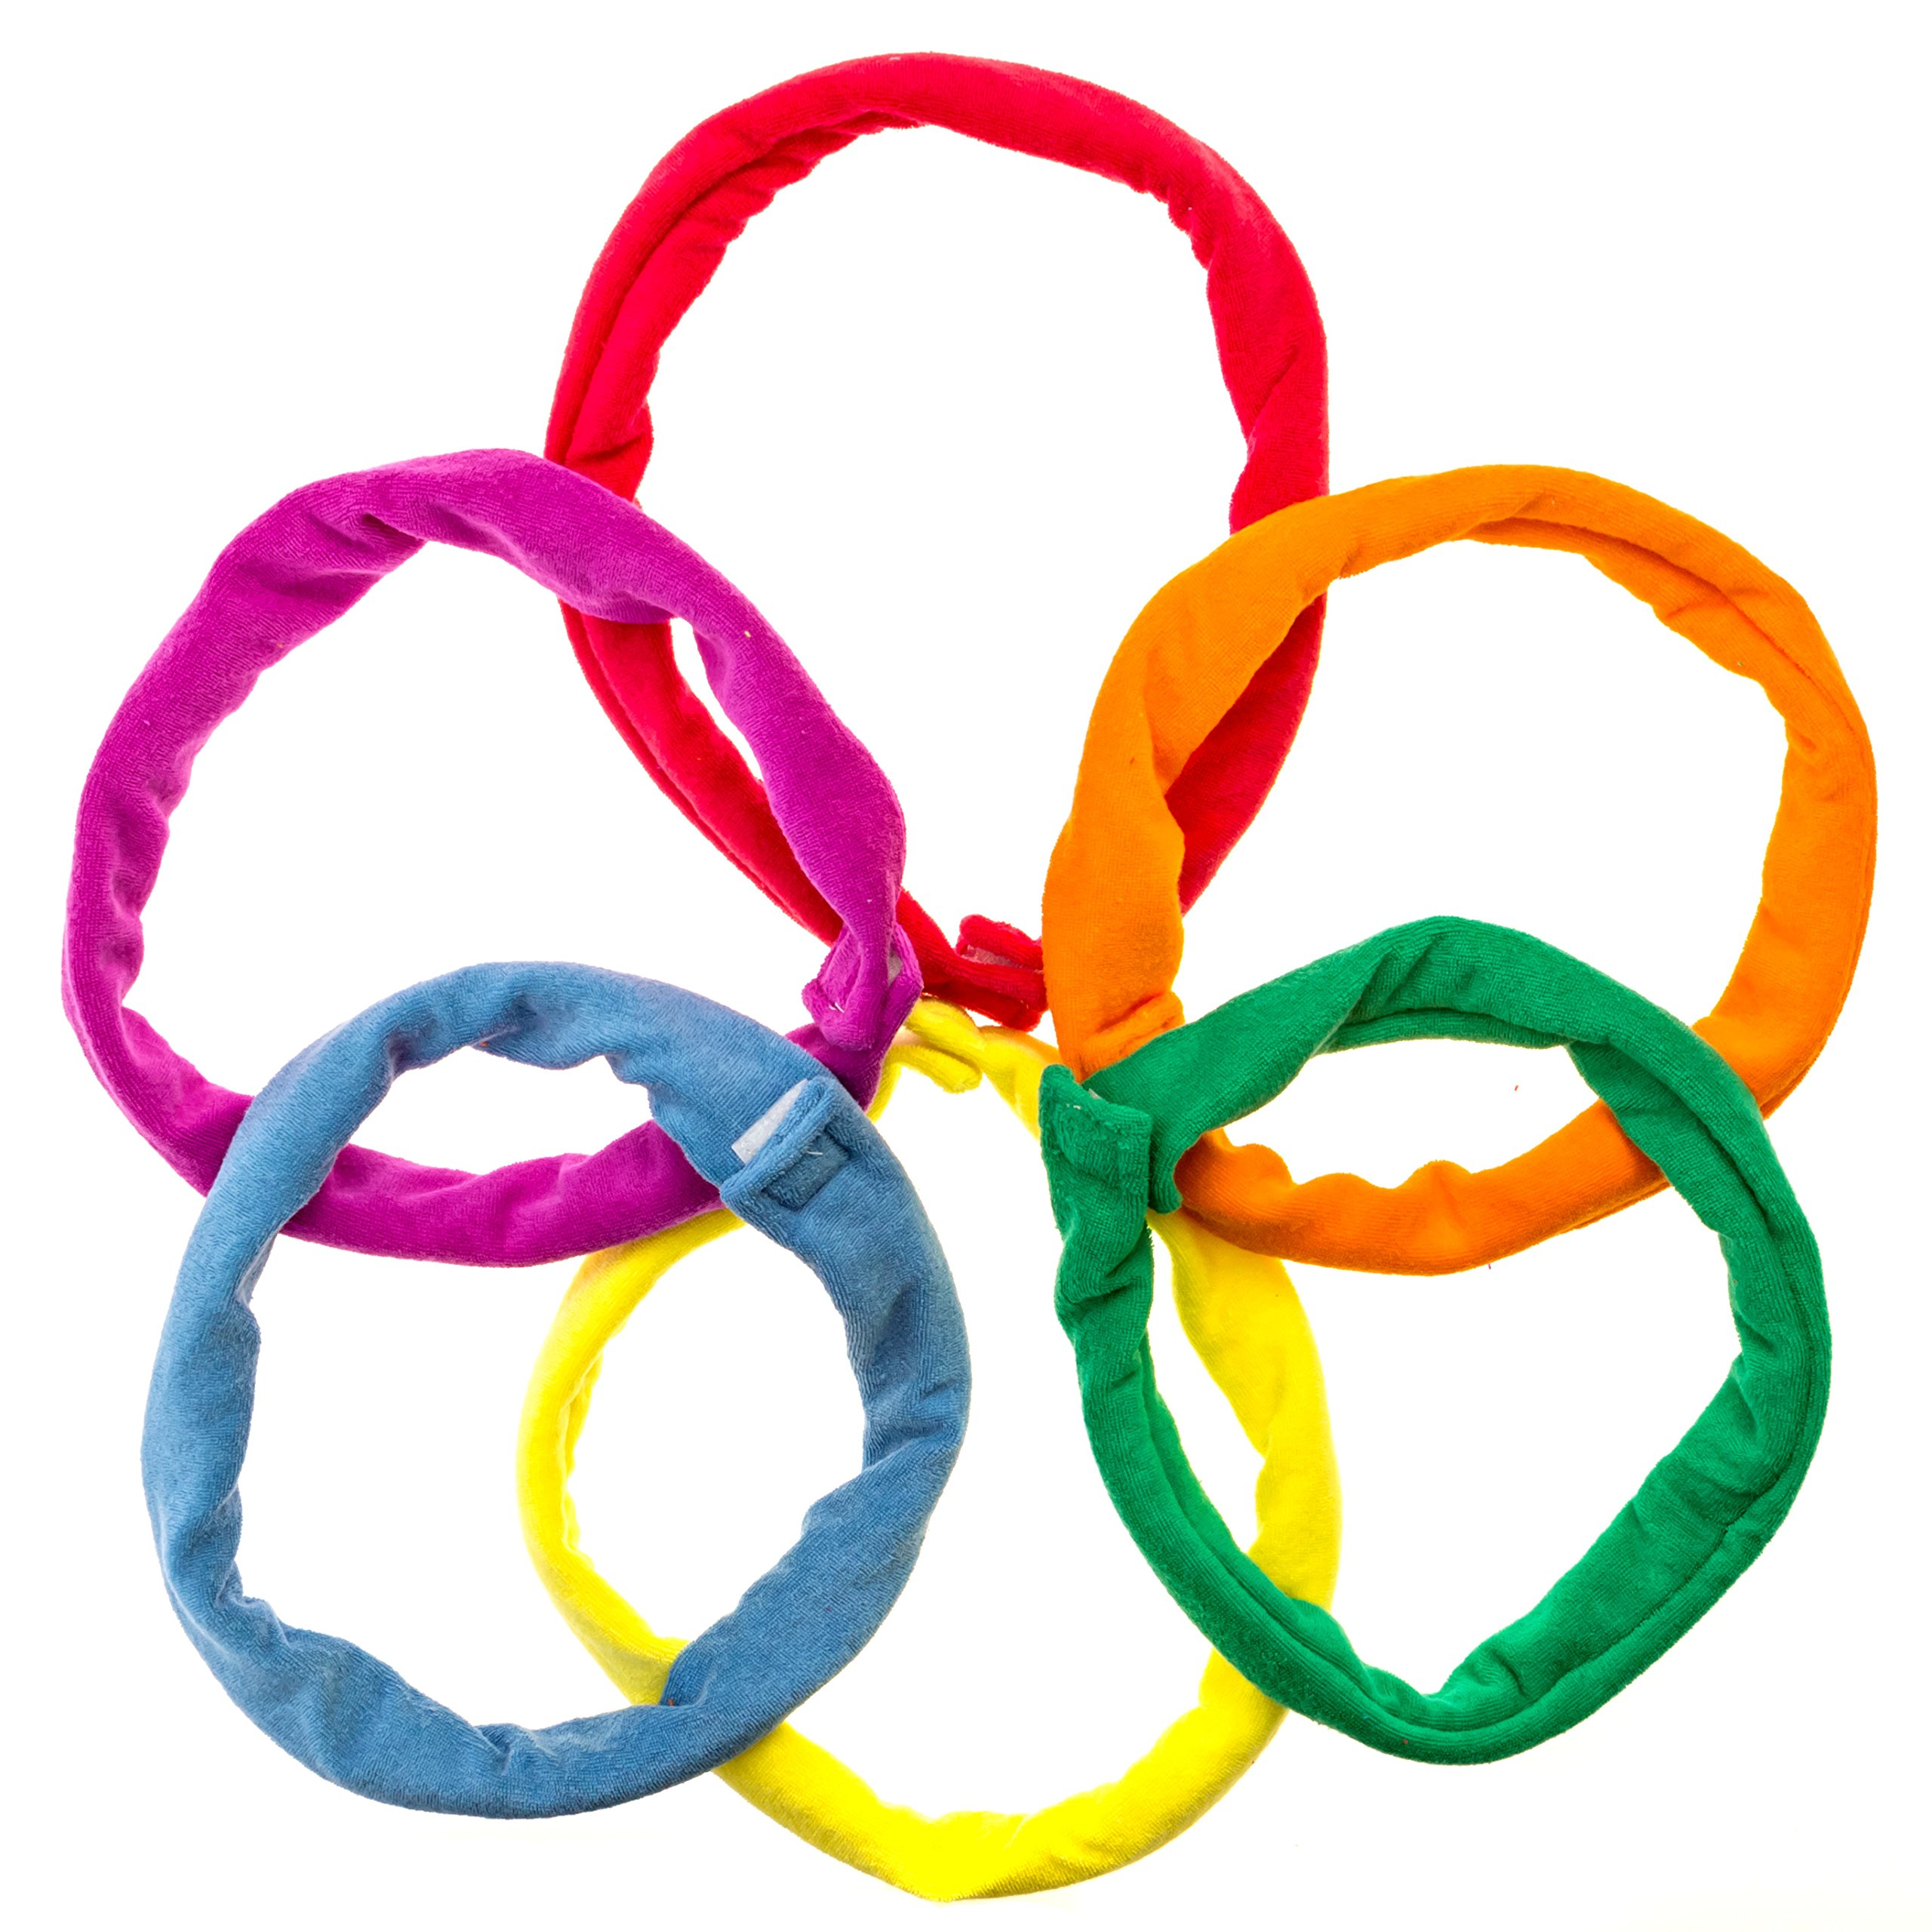 Chew Bands Necklaces 6-Pack Terry Cloth Super Absorbent Alternative to Chewing Shirts and Clothing by Special Supplies